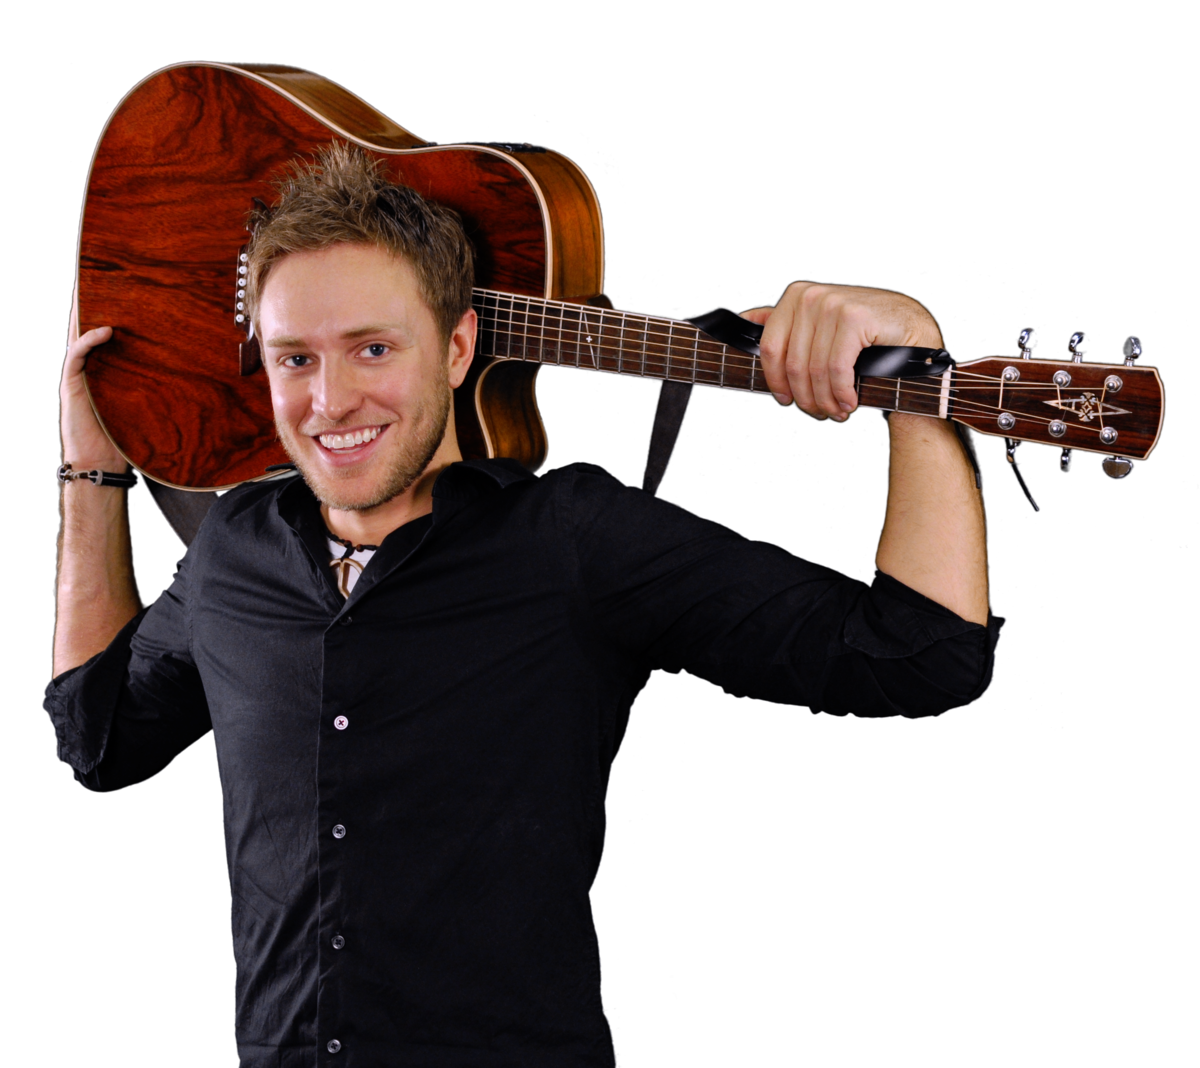 Solo Head Shots Photo #113